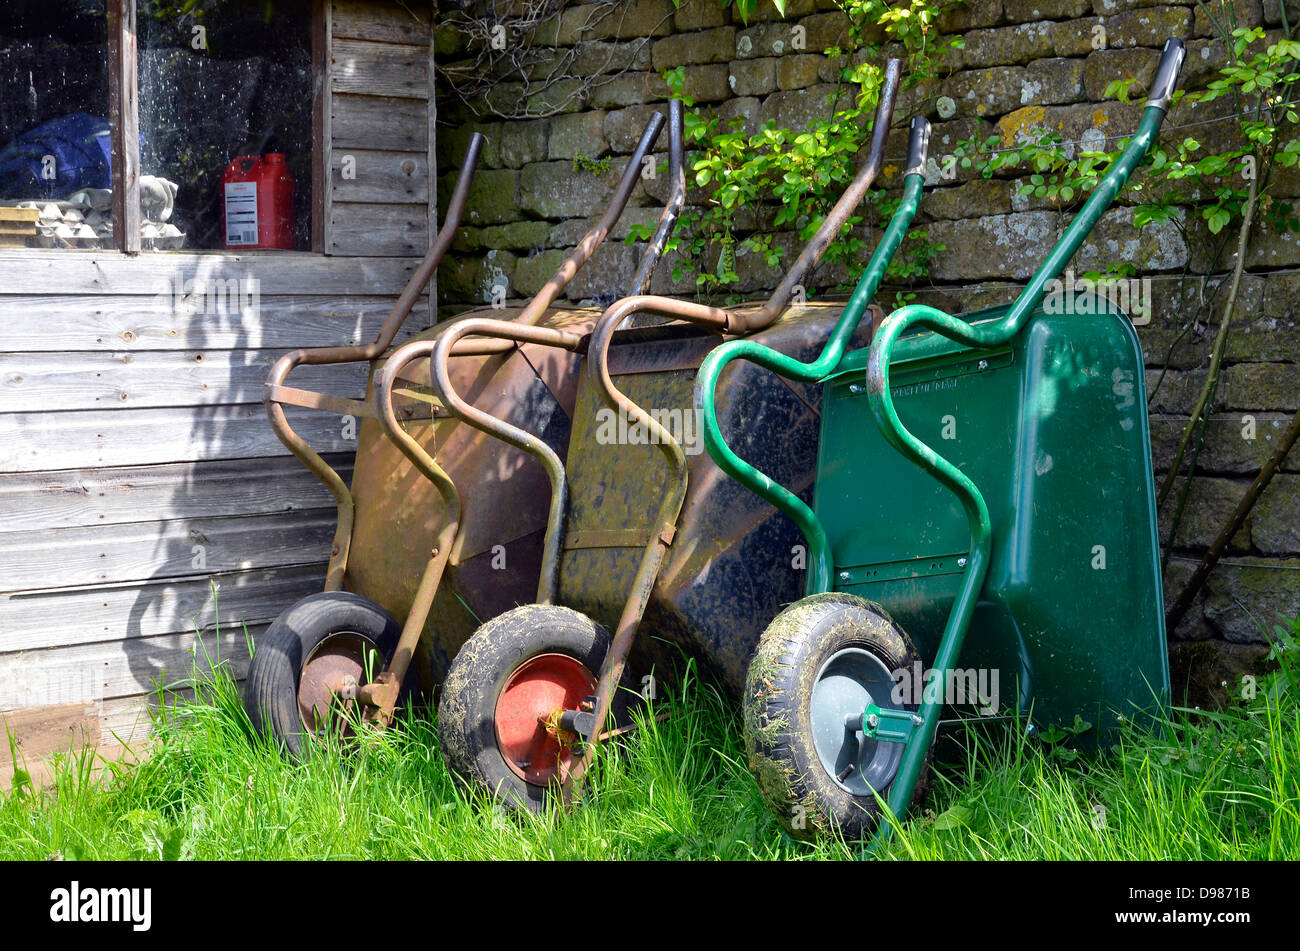 Wheelbarrows leaning against a wall by a garden shed. - Stock Image